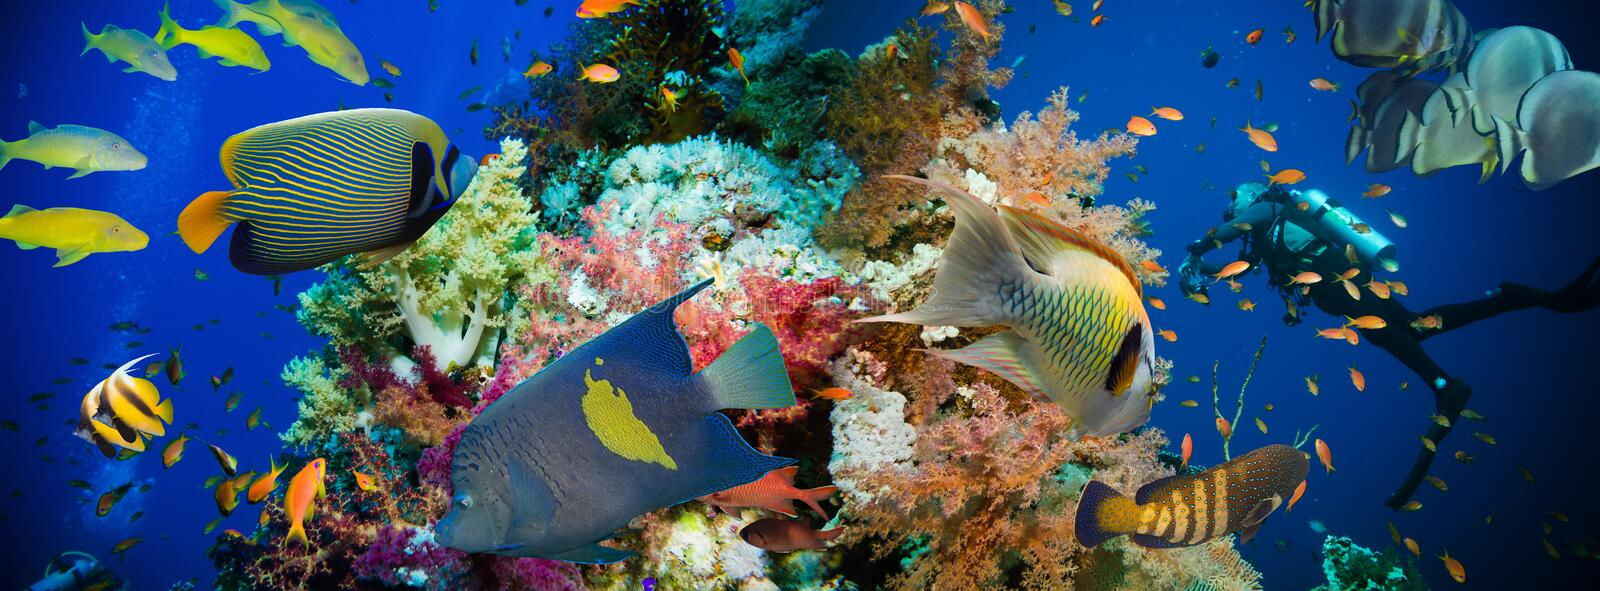 Tropical Anthias fish with net fire corals royalty free stock images